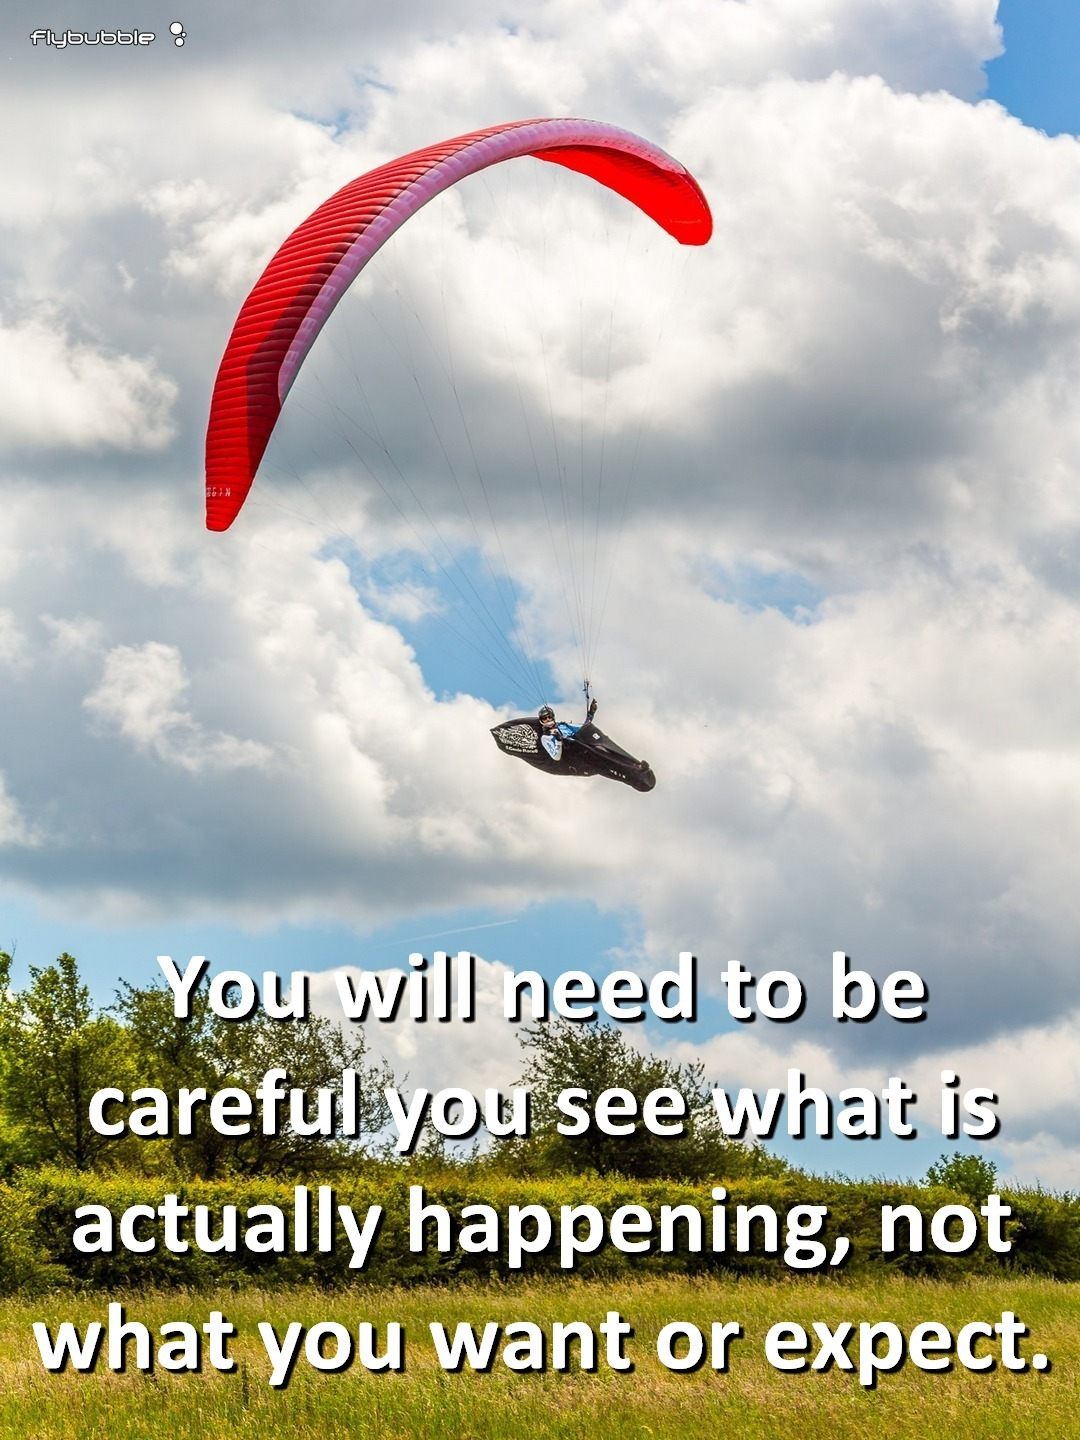 You will need to be careful you see what is actually happening, not what you want or expect.